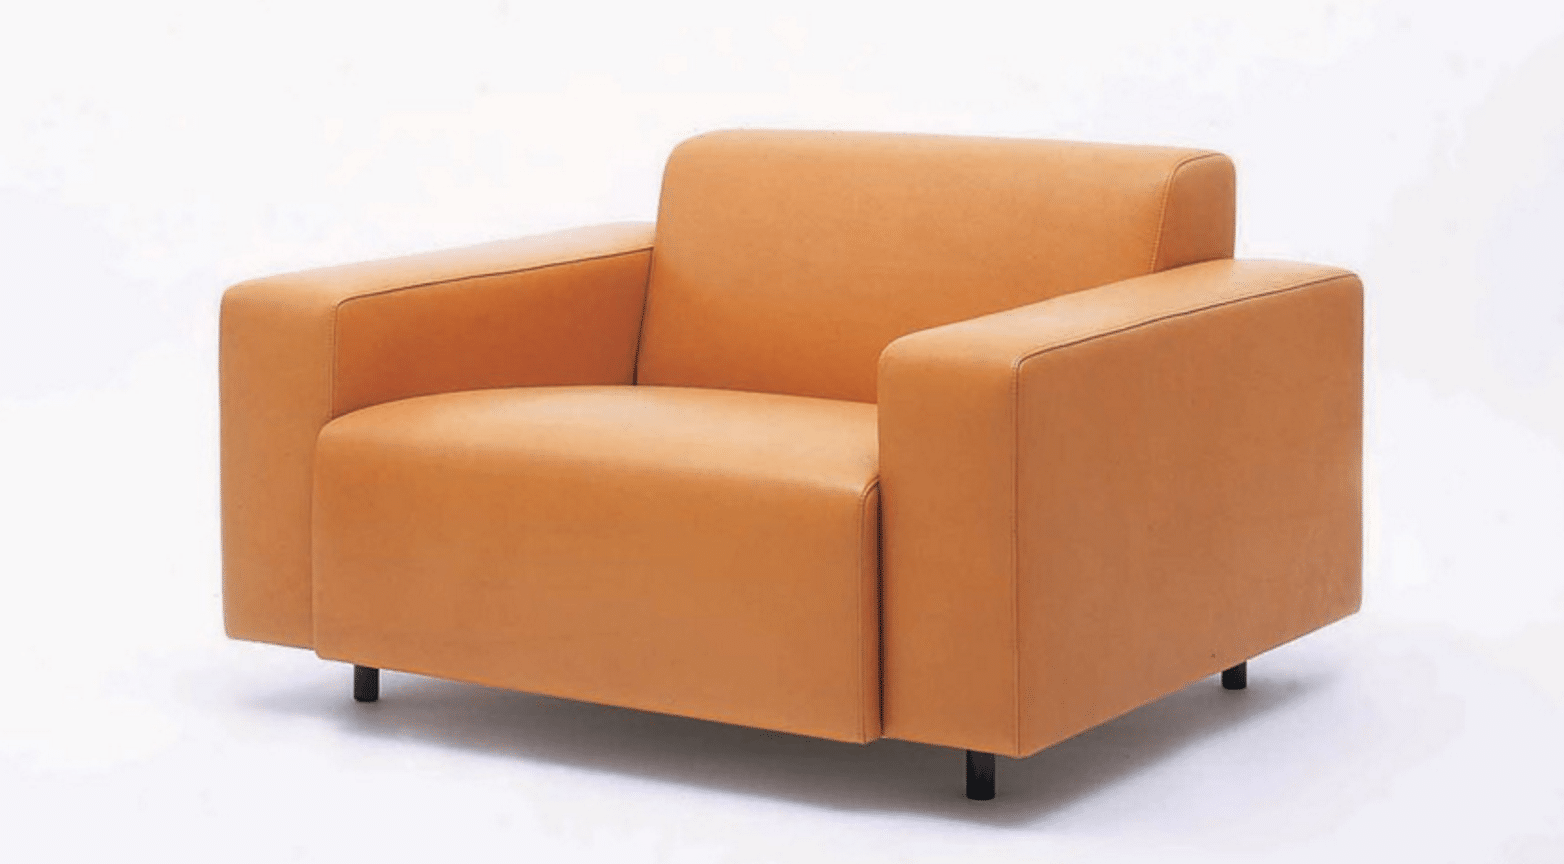 17-leather-sofa-office-seat-spaceist-blog